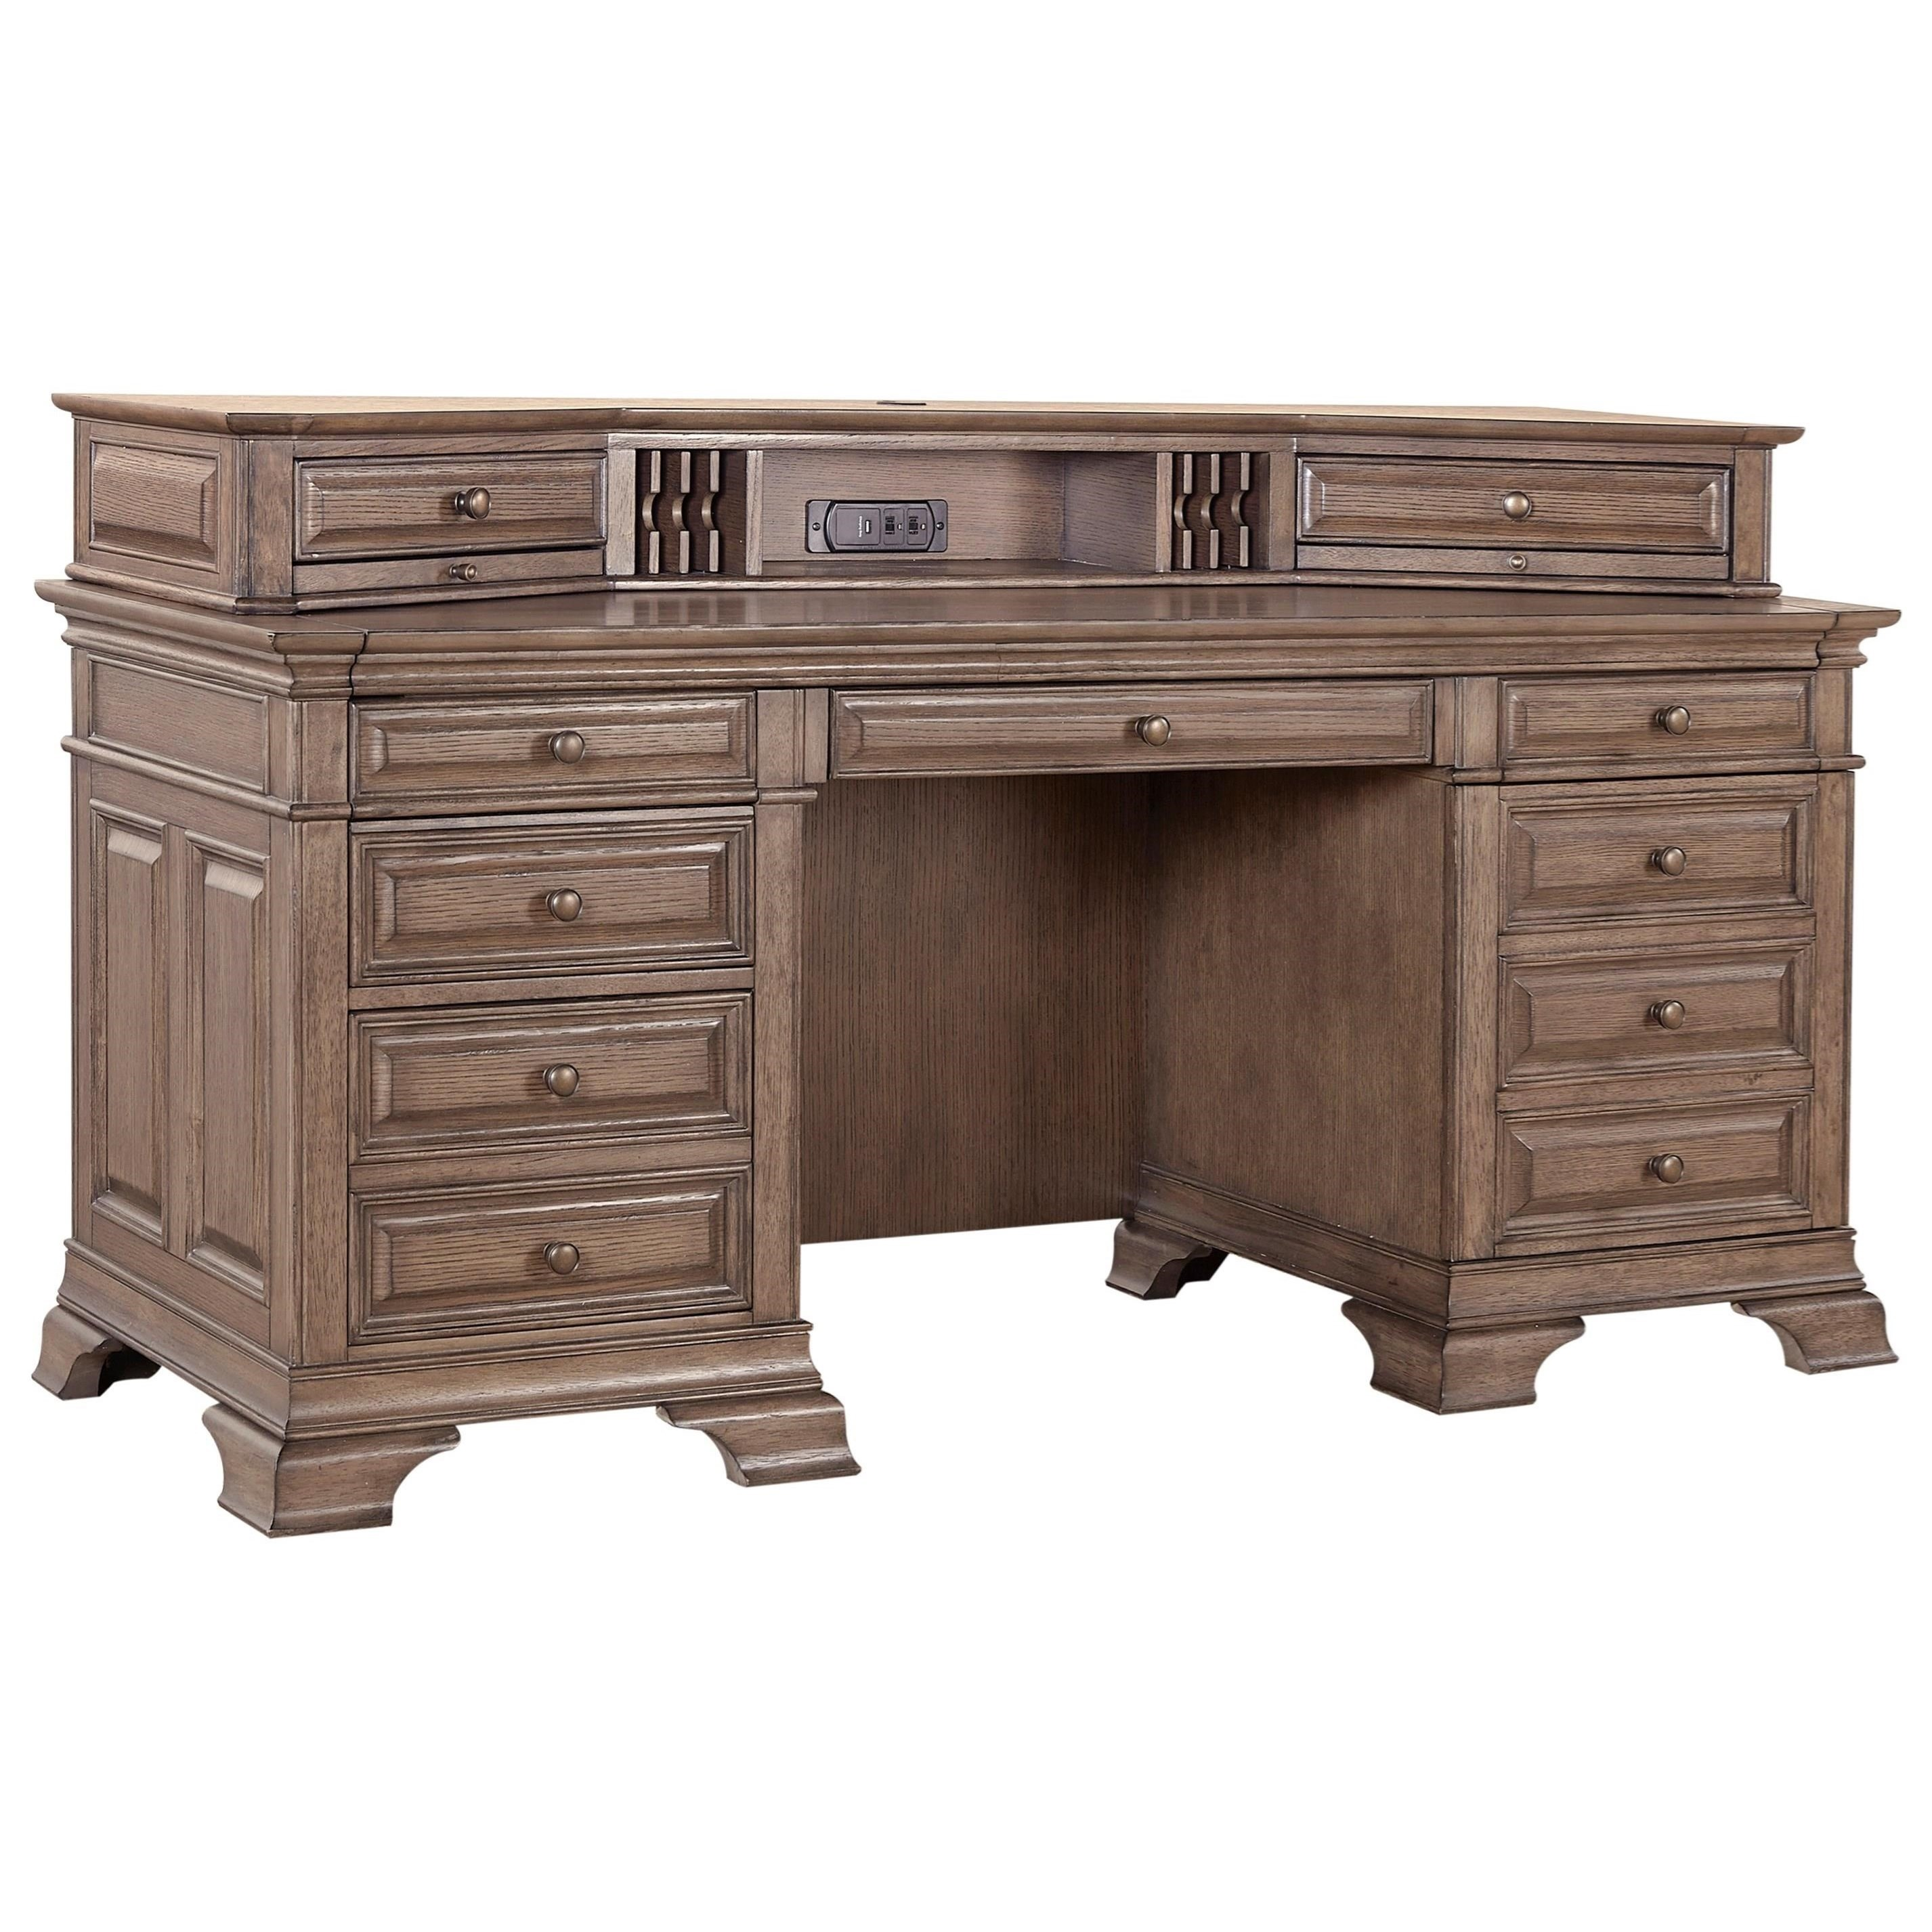 "72"" Credenza Desk with Sliding Top"